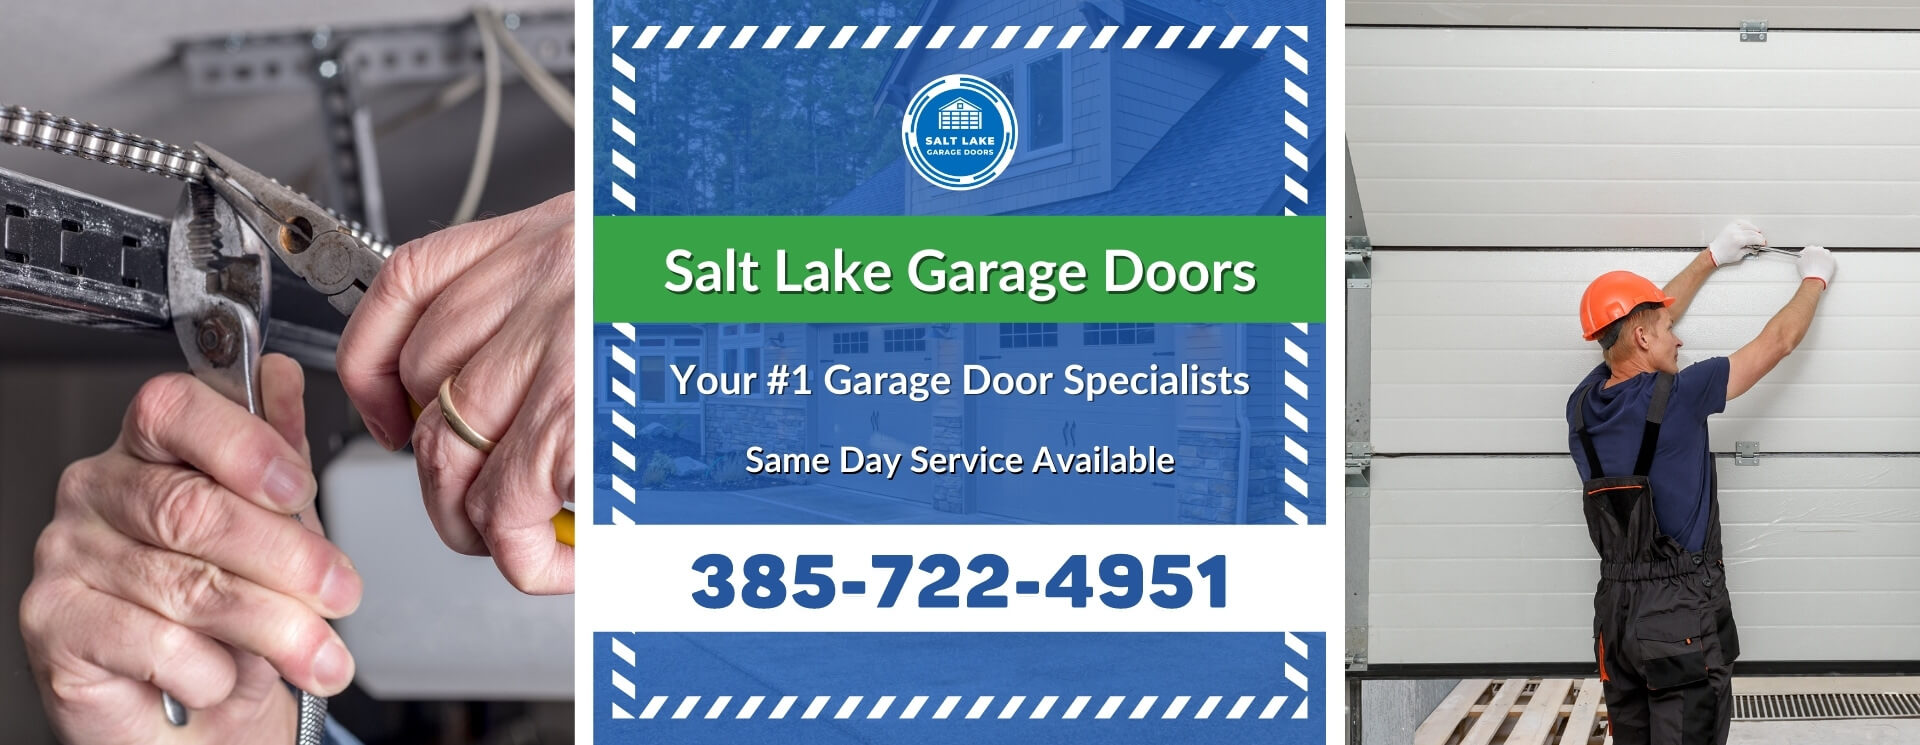 Salt Lake Garage Doors